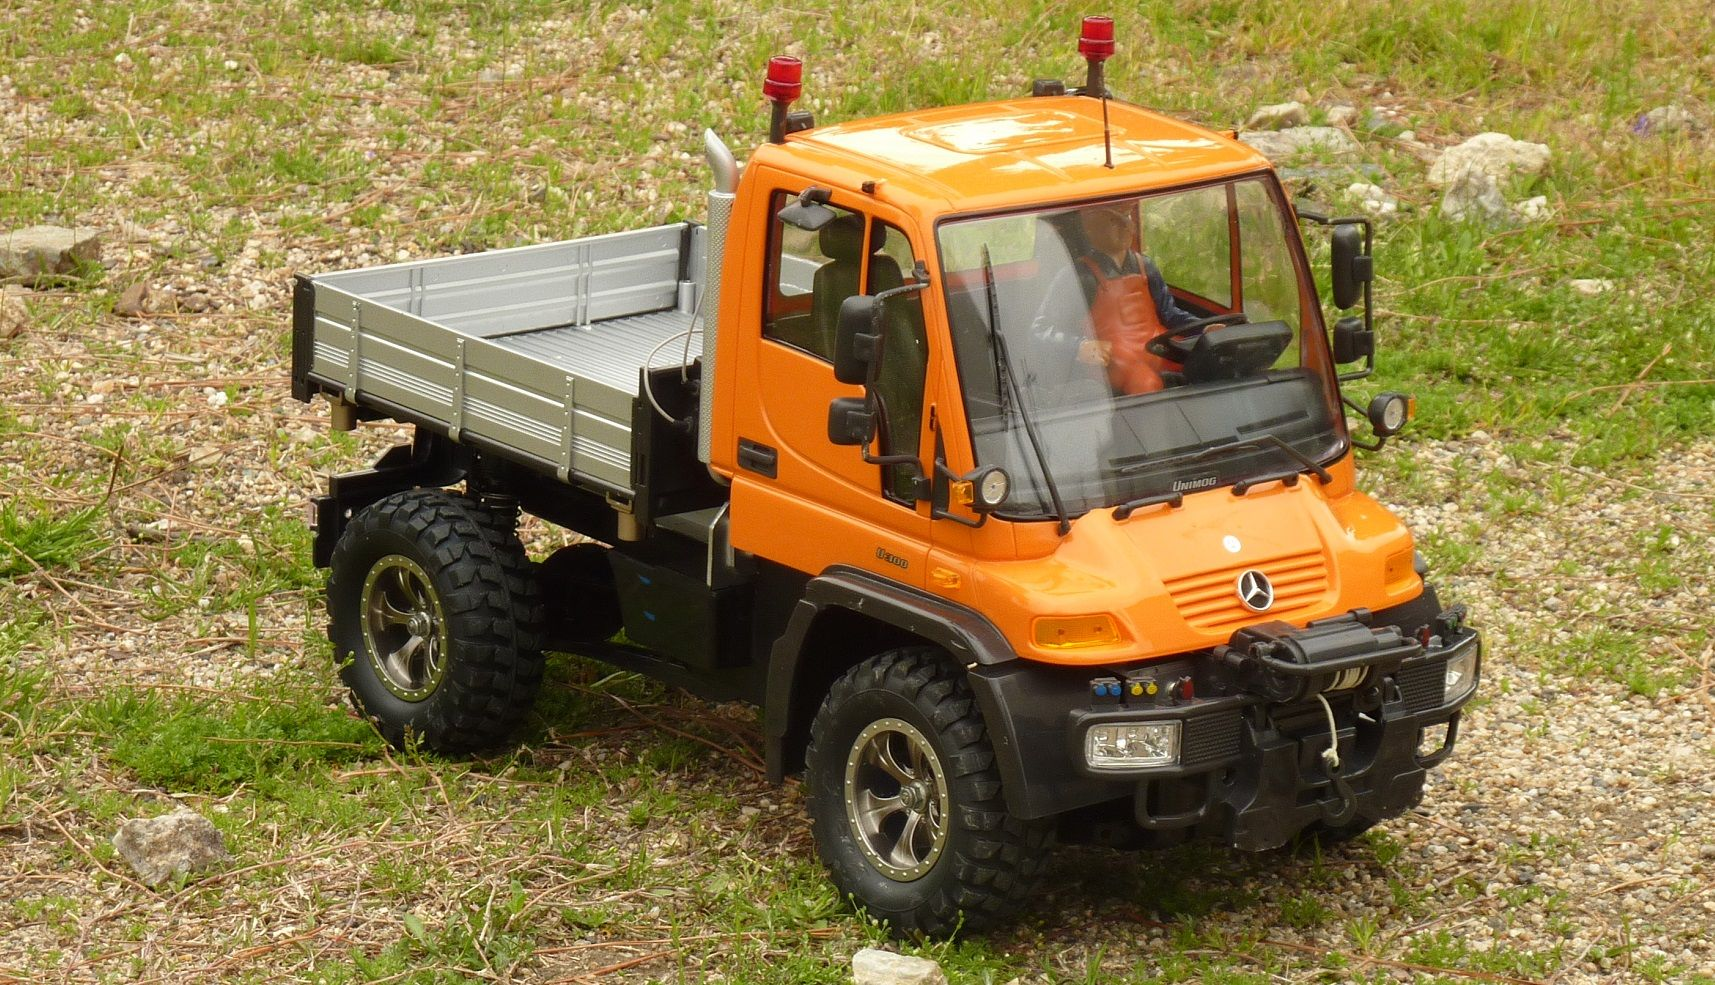 benz unimog u300 cc 01 rc offroad car truck. Black Bedroom Furniture Sets. Home Design Ideas